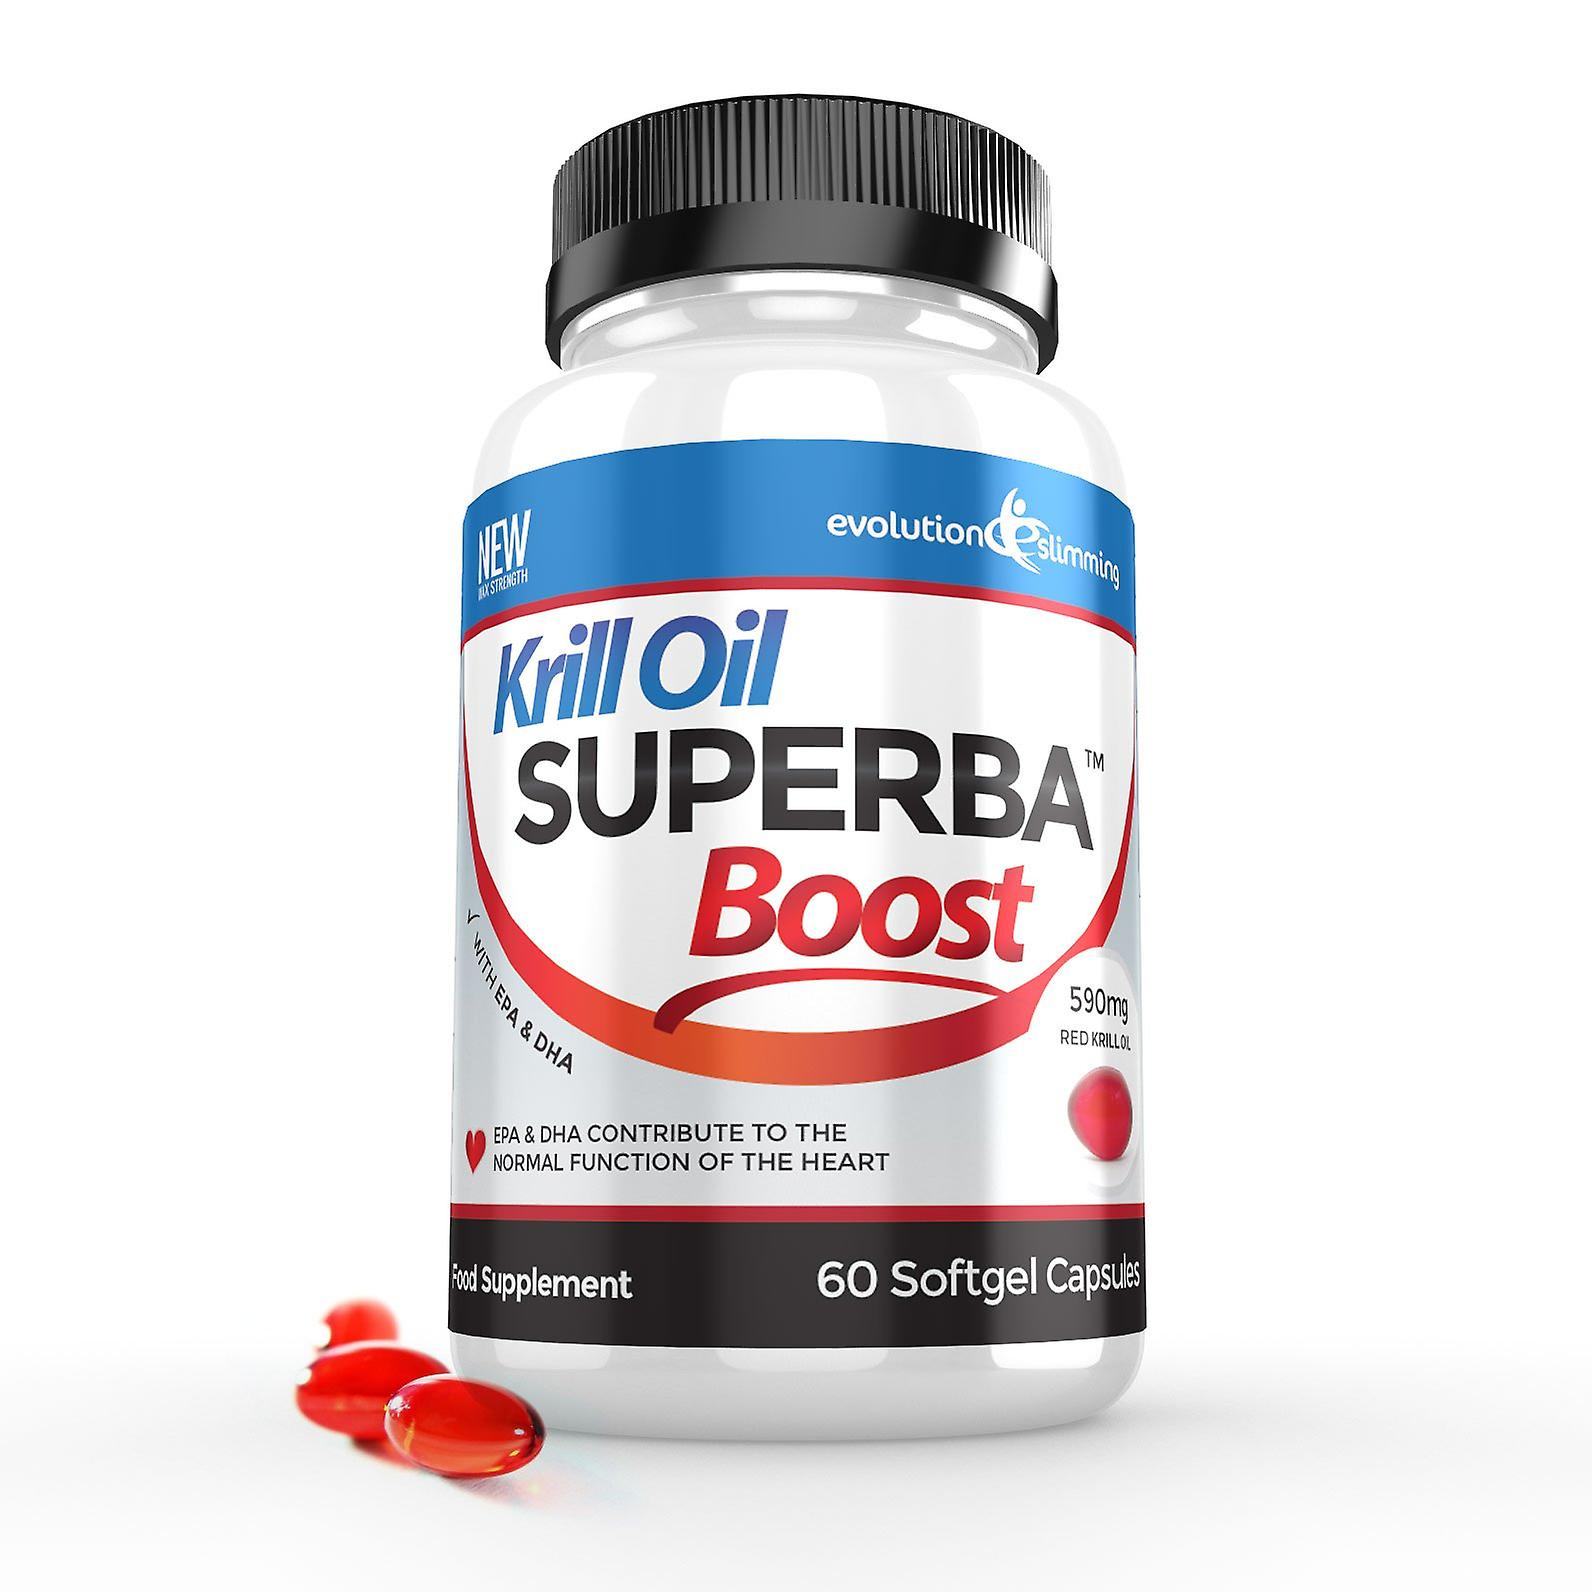 Krill Oil Superba™ Boost 590mg Krill Oil Softgels - 60 Capsules - Brain, Heart and Joint Health - Evolution Slimming